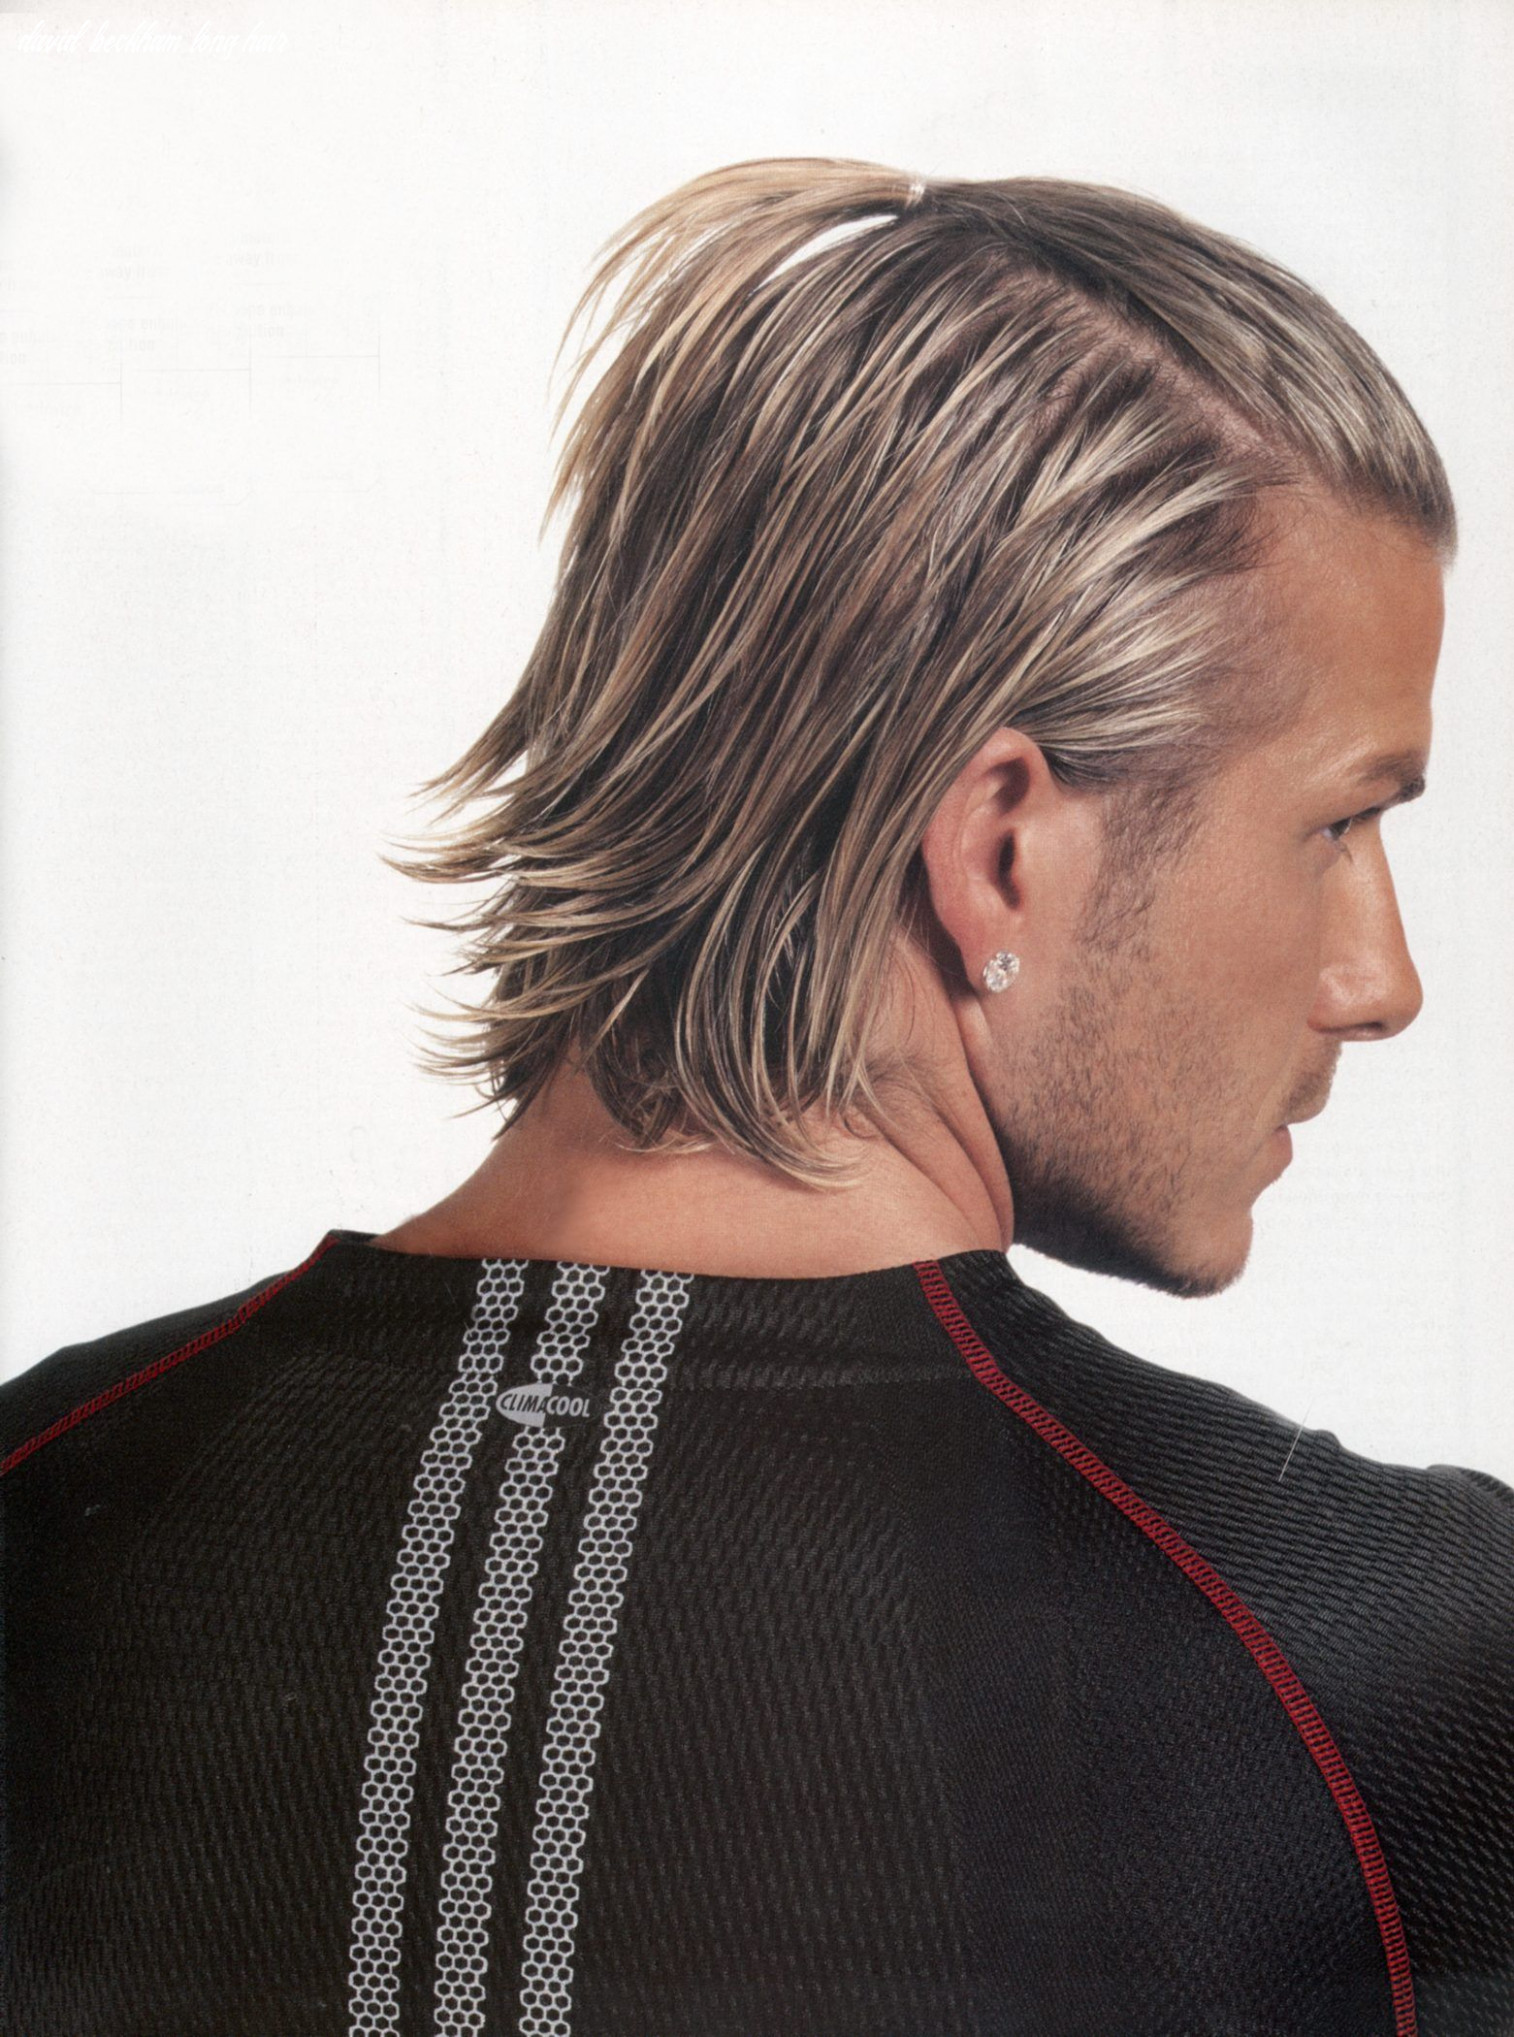 Becks hair color is really cool he can do any shade (with